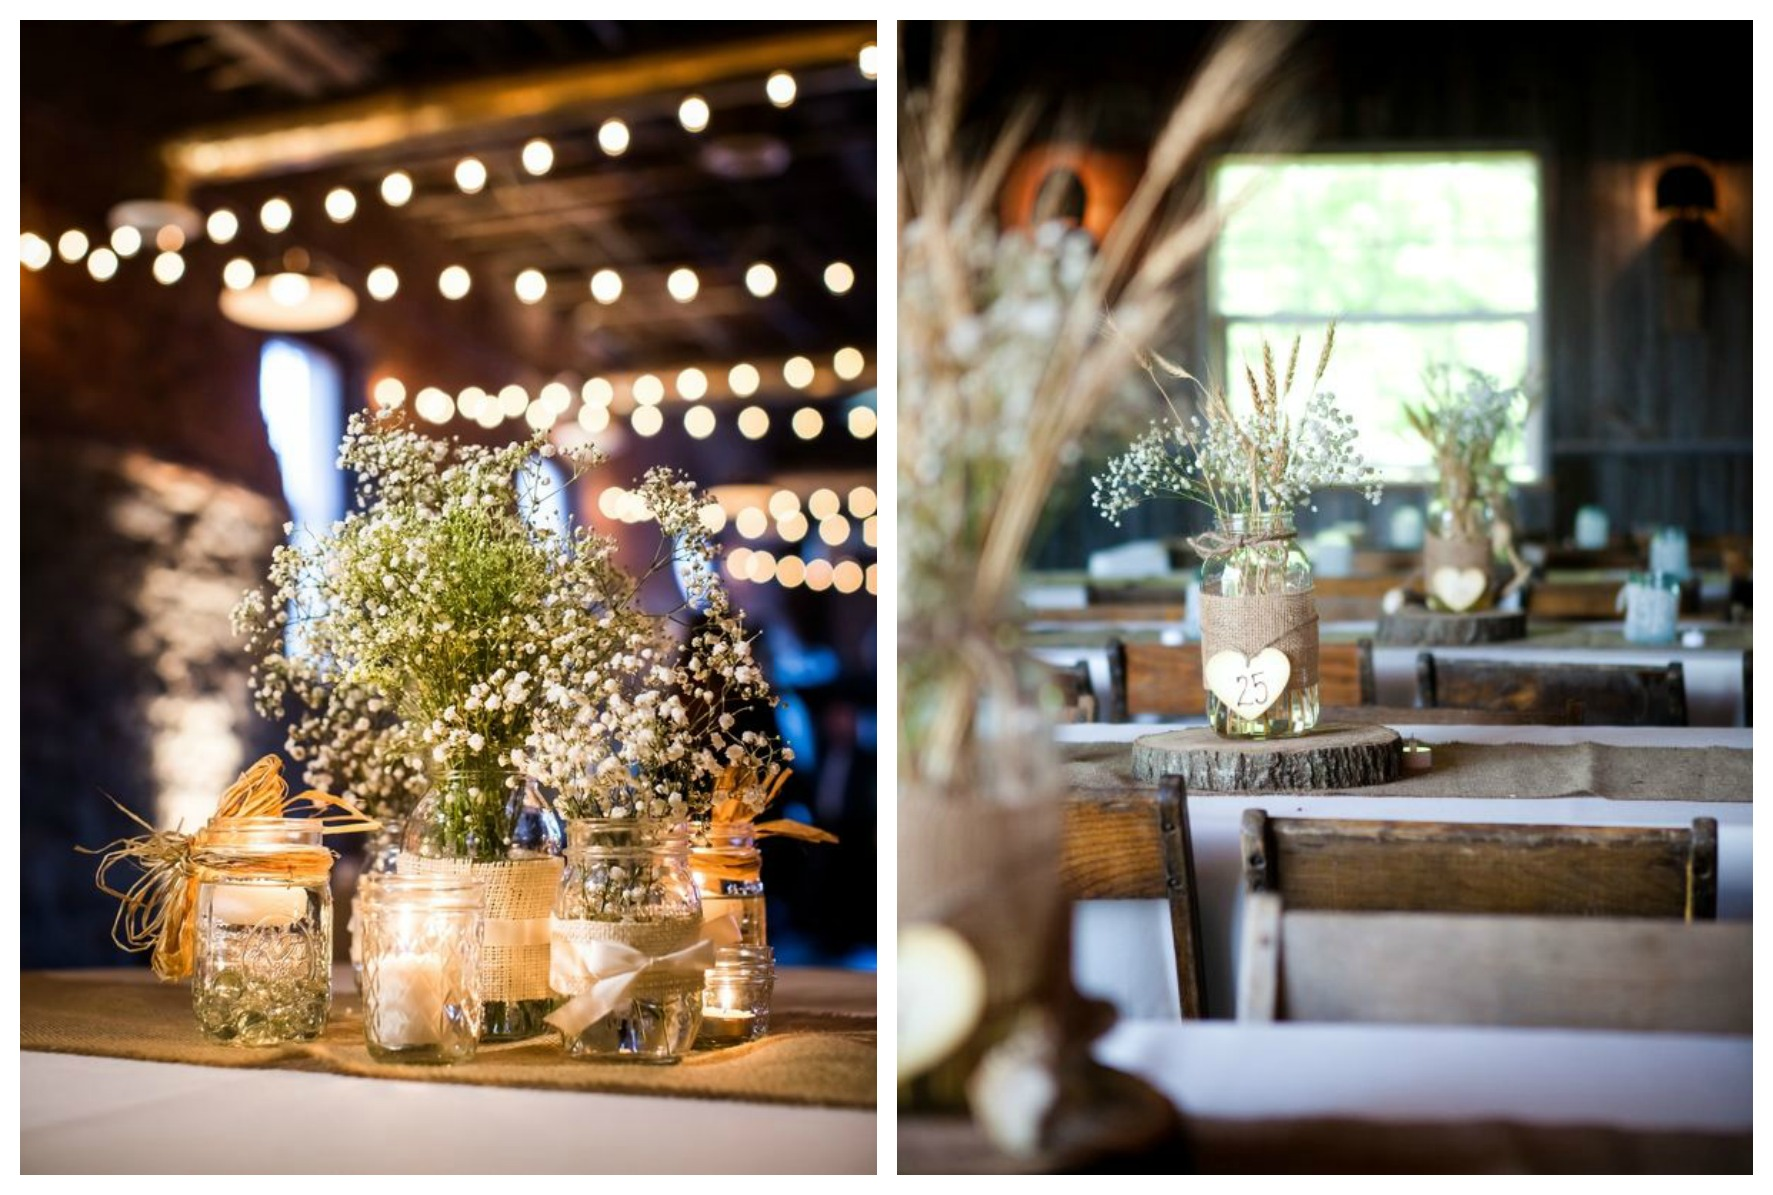 Decoracion Bodas Rusticas ~   os parecen todas estas ideas? ?Os atrev?is con una boda r?stica